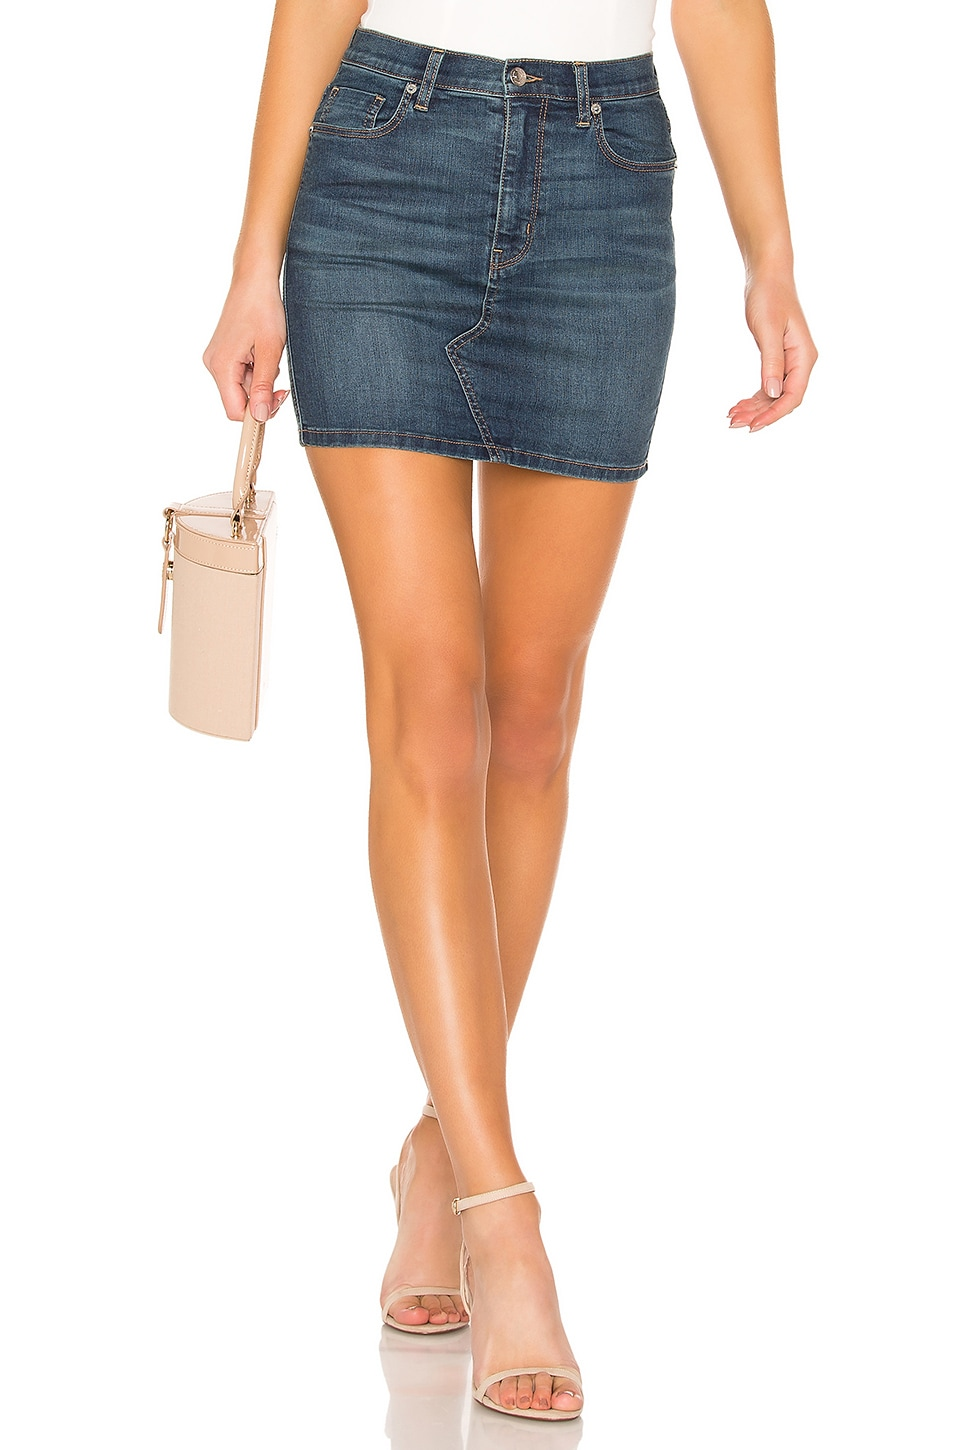 Free People Teagan Denim Skirt in Dark Denim